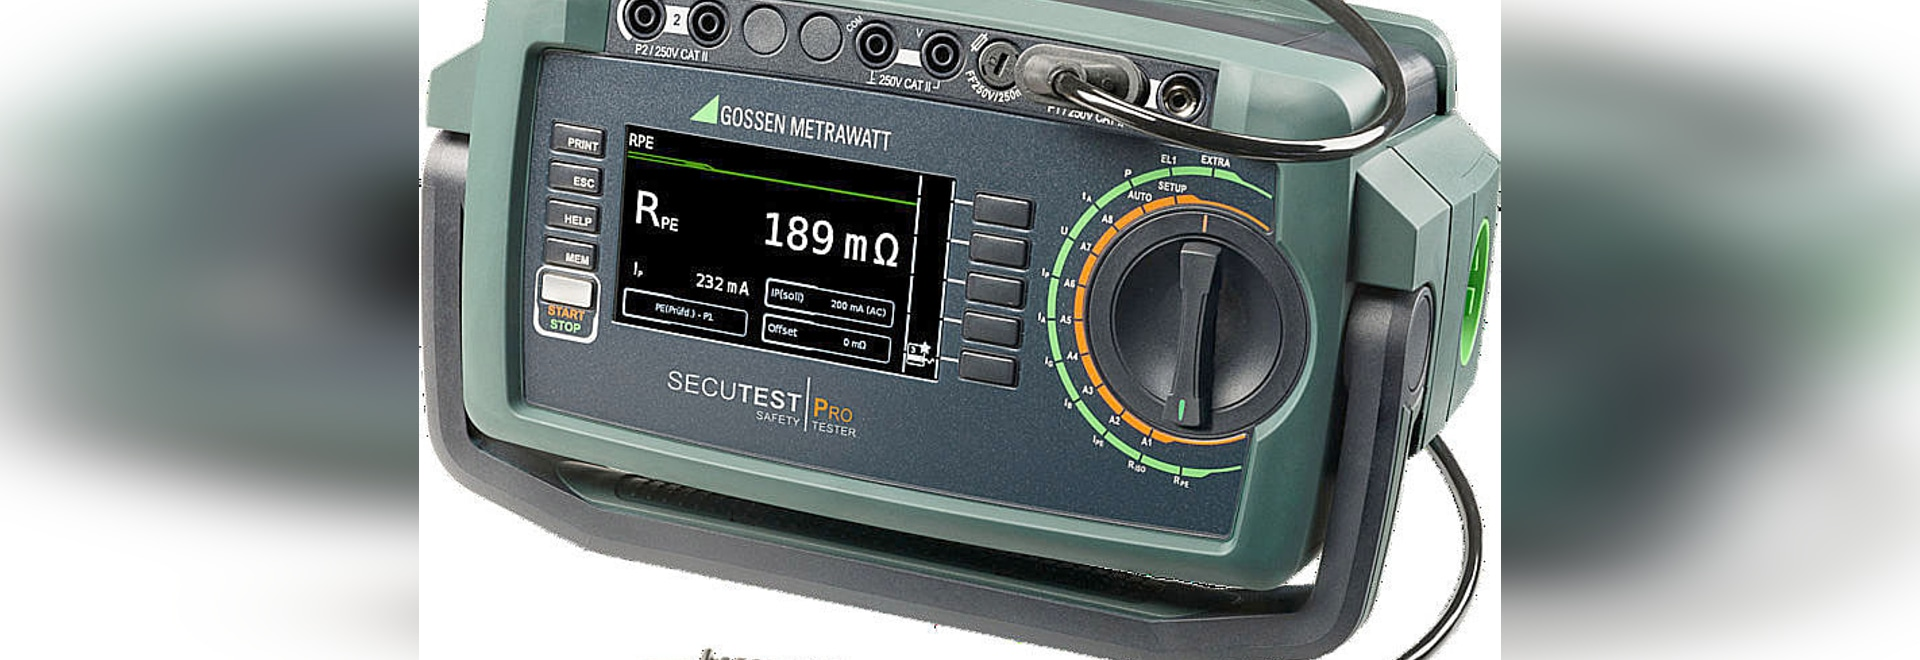 New SECUTEST BASE (10) & PRO: Safety tester for electrical devices, medical devices and welding units